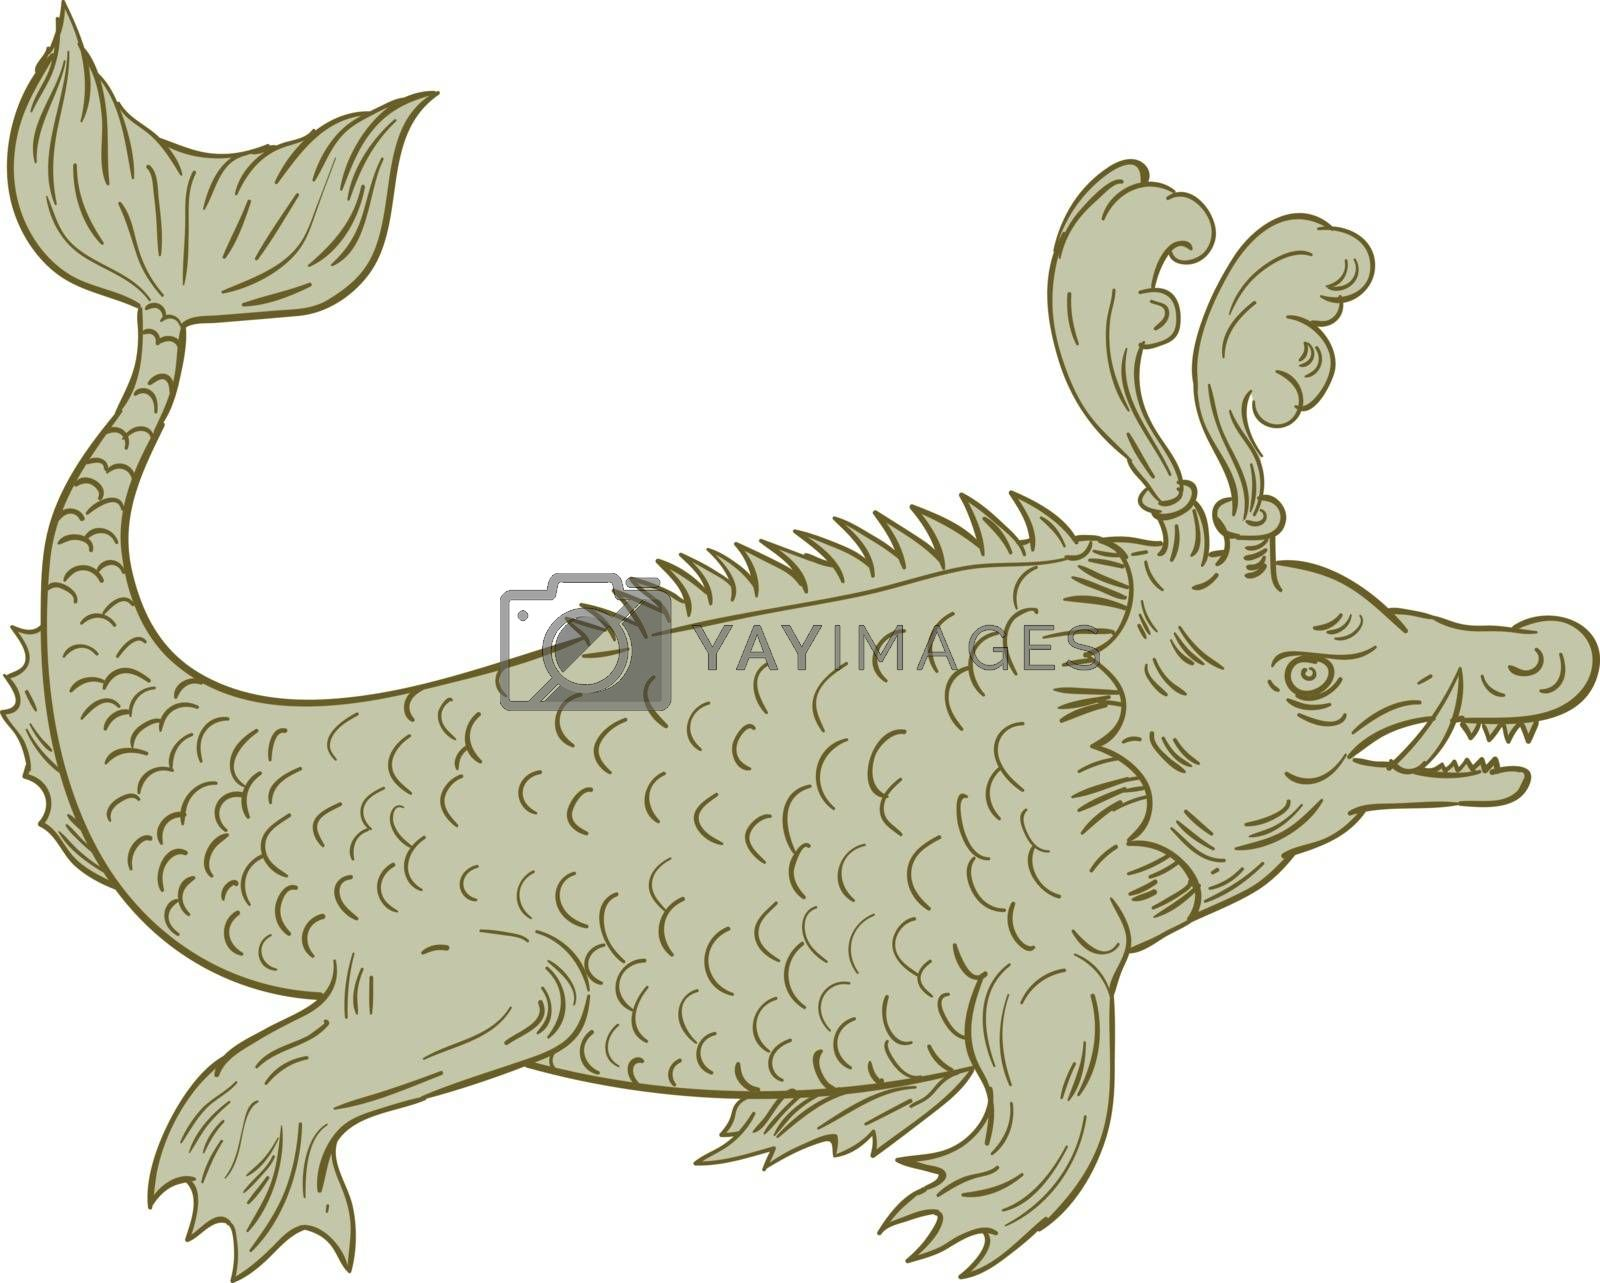 Drawing sketch style illustration of an ancient sea monsters, marine beings from folklore believed to dwell in the sea and often imagined to be of immense size set on isolated white background viewed from the side